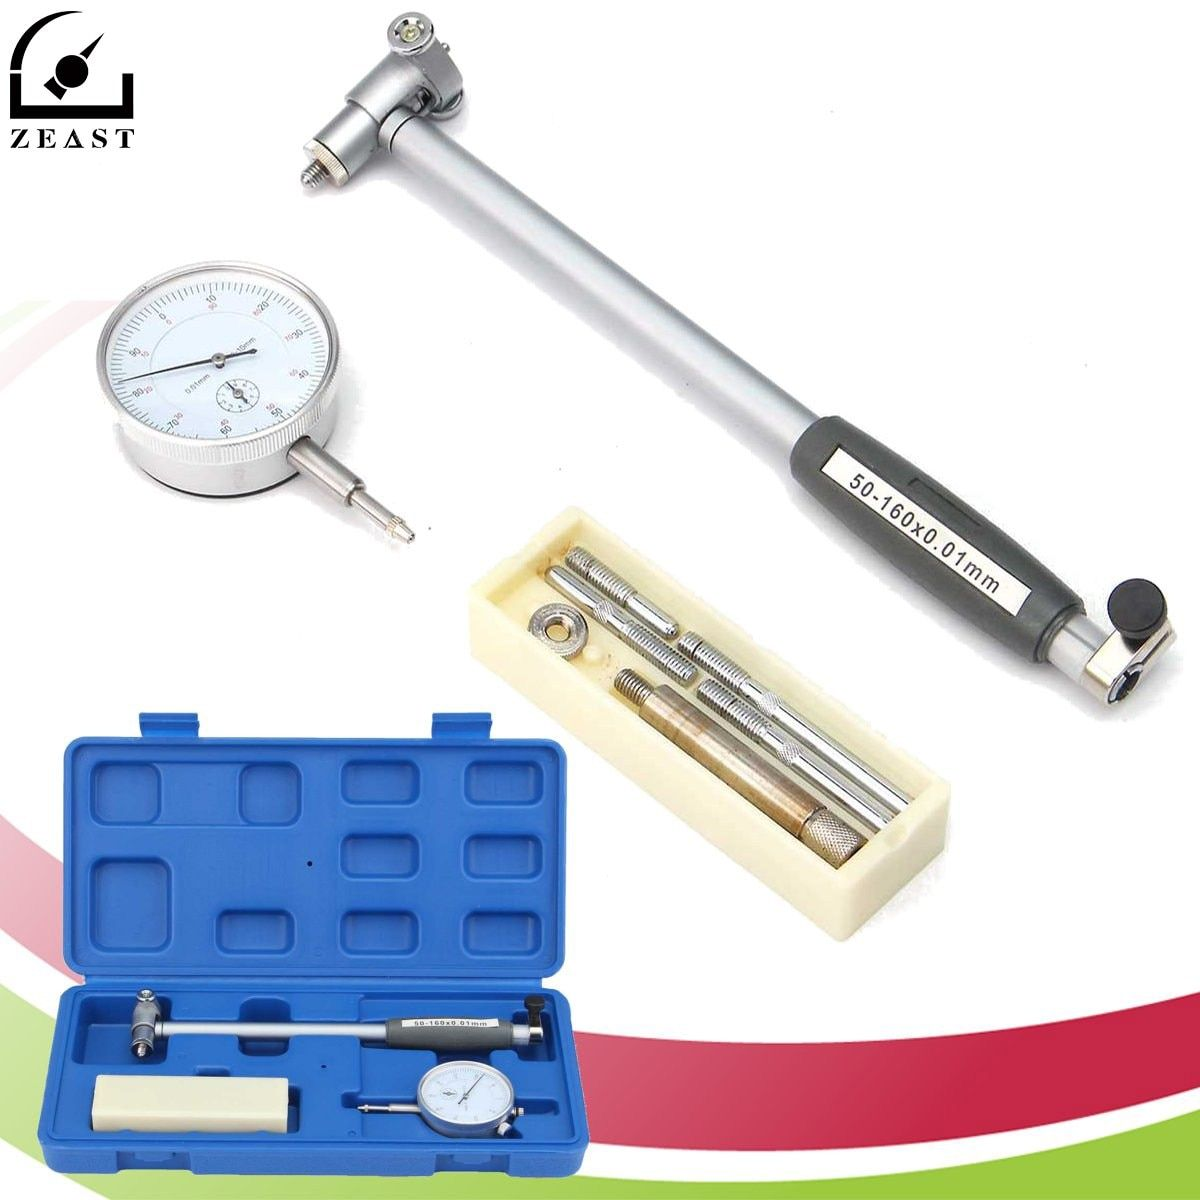 Engine Dial Bore Gauge Hole Indicator Set Measure Range 50-160mm 0.01mm Accuracy Kit